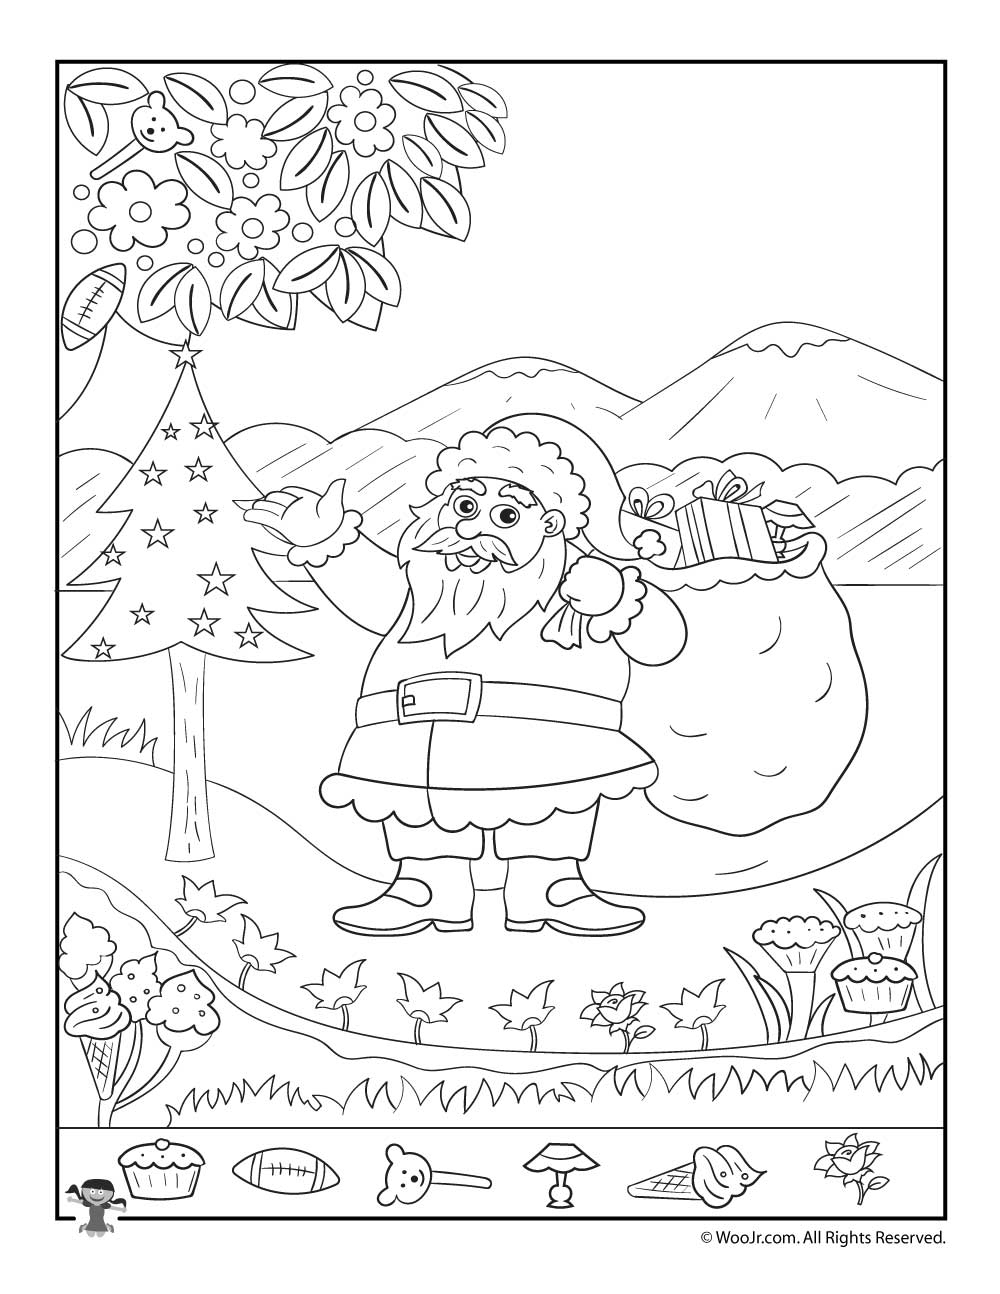 Christmas Hidden Pictures Printables For Kids | Woo! Jr. Kids Activities - Free Printable Christmas Hidden Picture Games